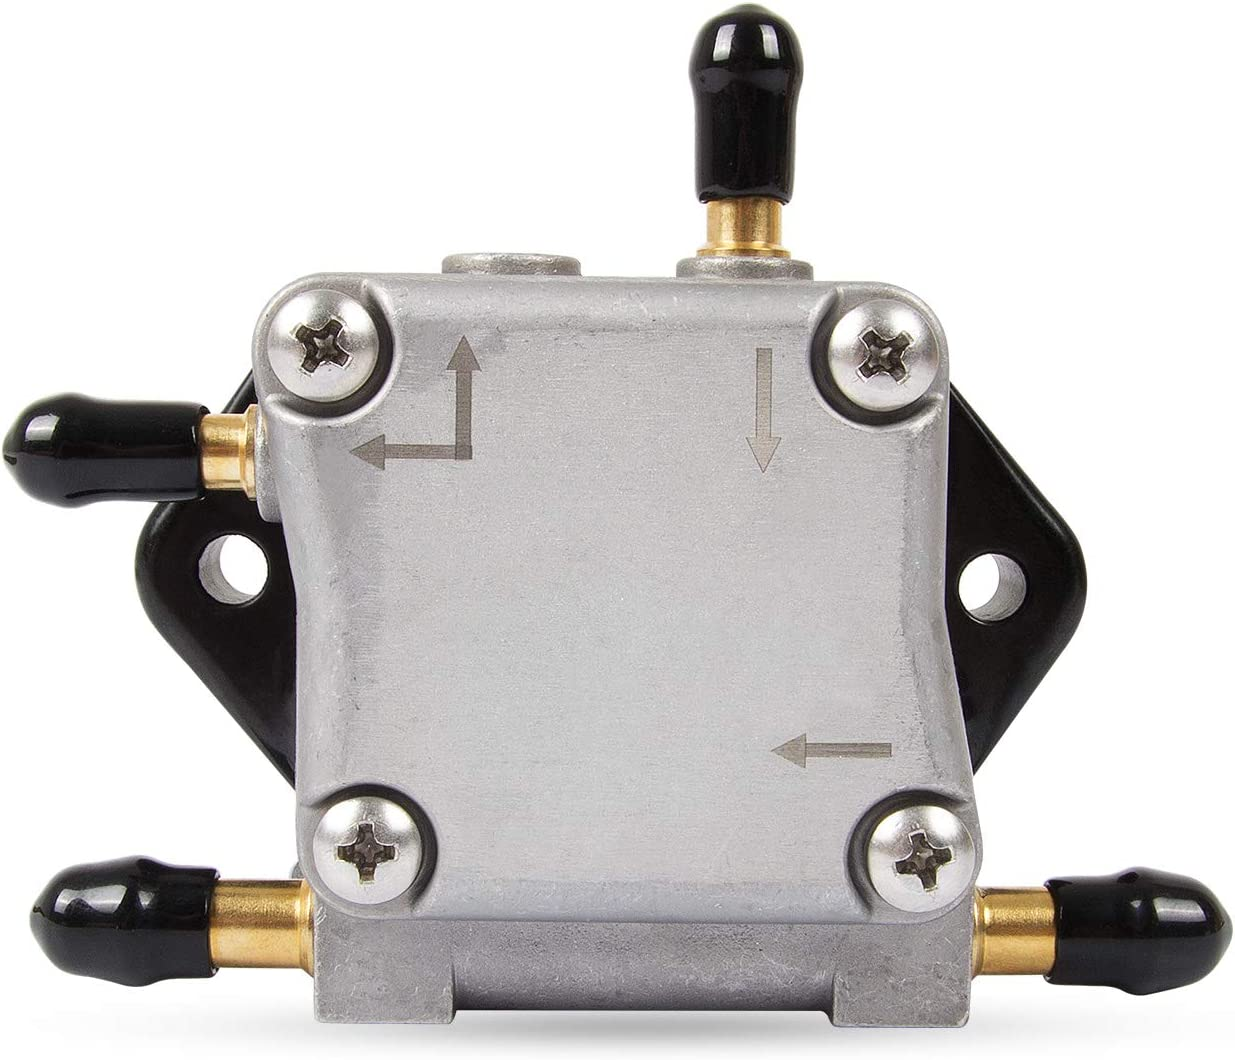 RANSOTO Fuel Pump Compatible With Mercury 40, 50, 60 HP 4 Stroke Outboard Engine,Replace # 8M0118177, 892874T01